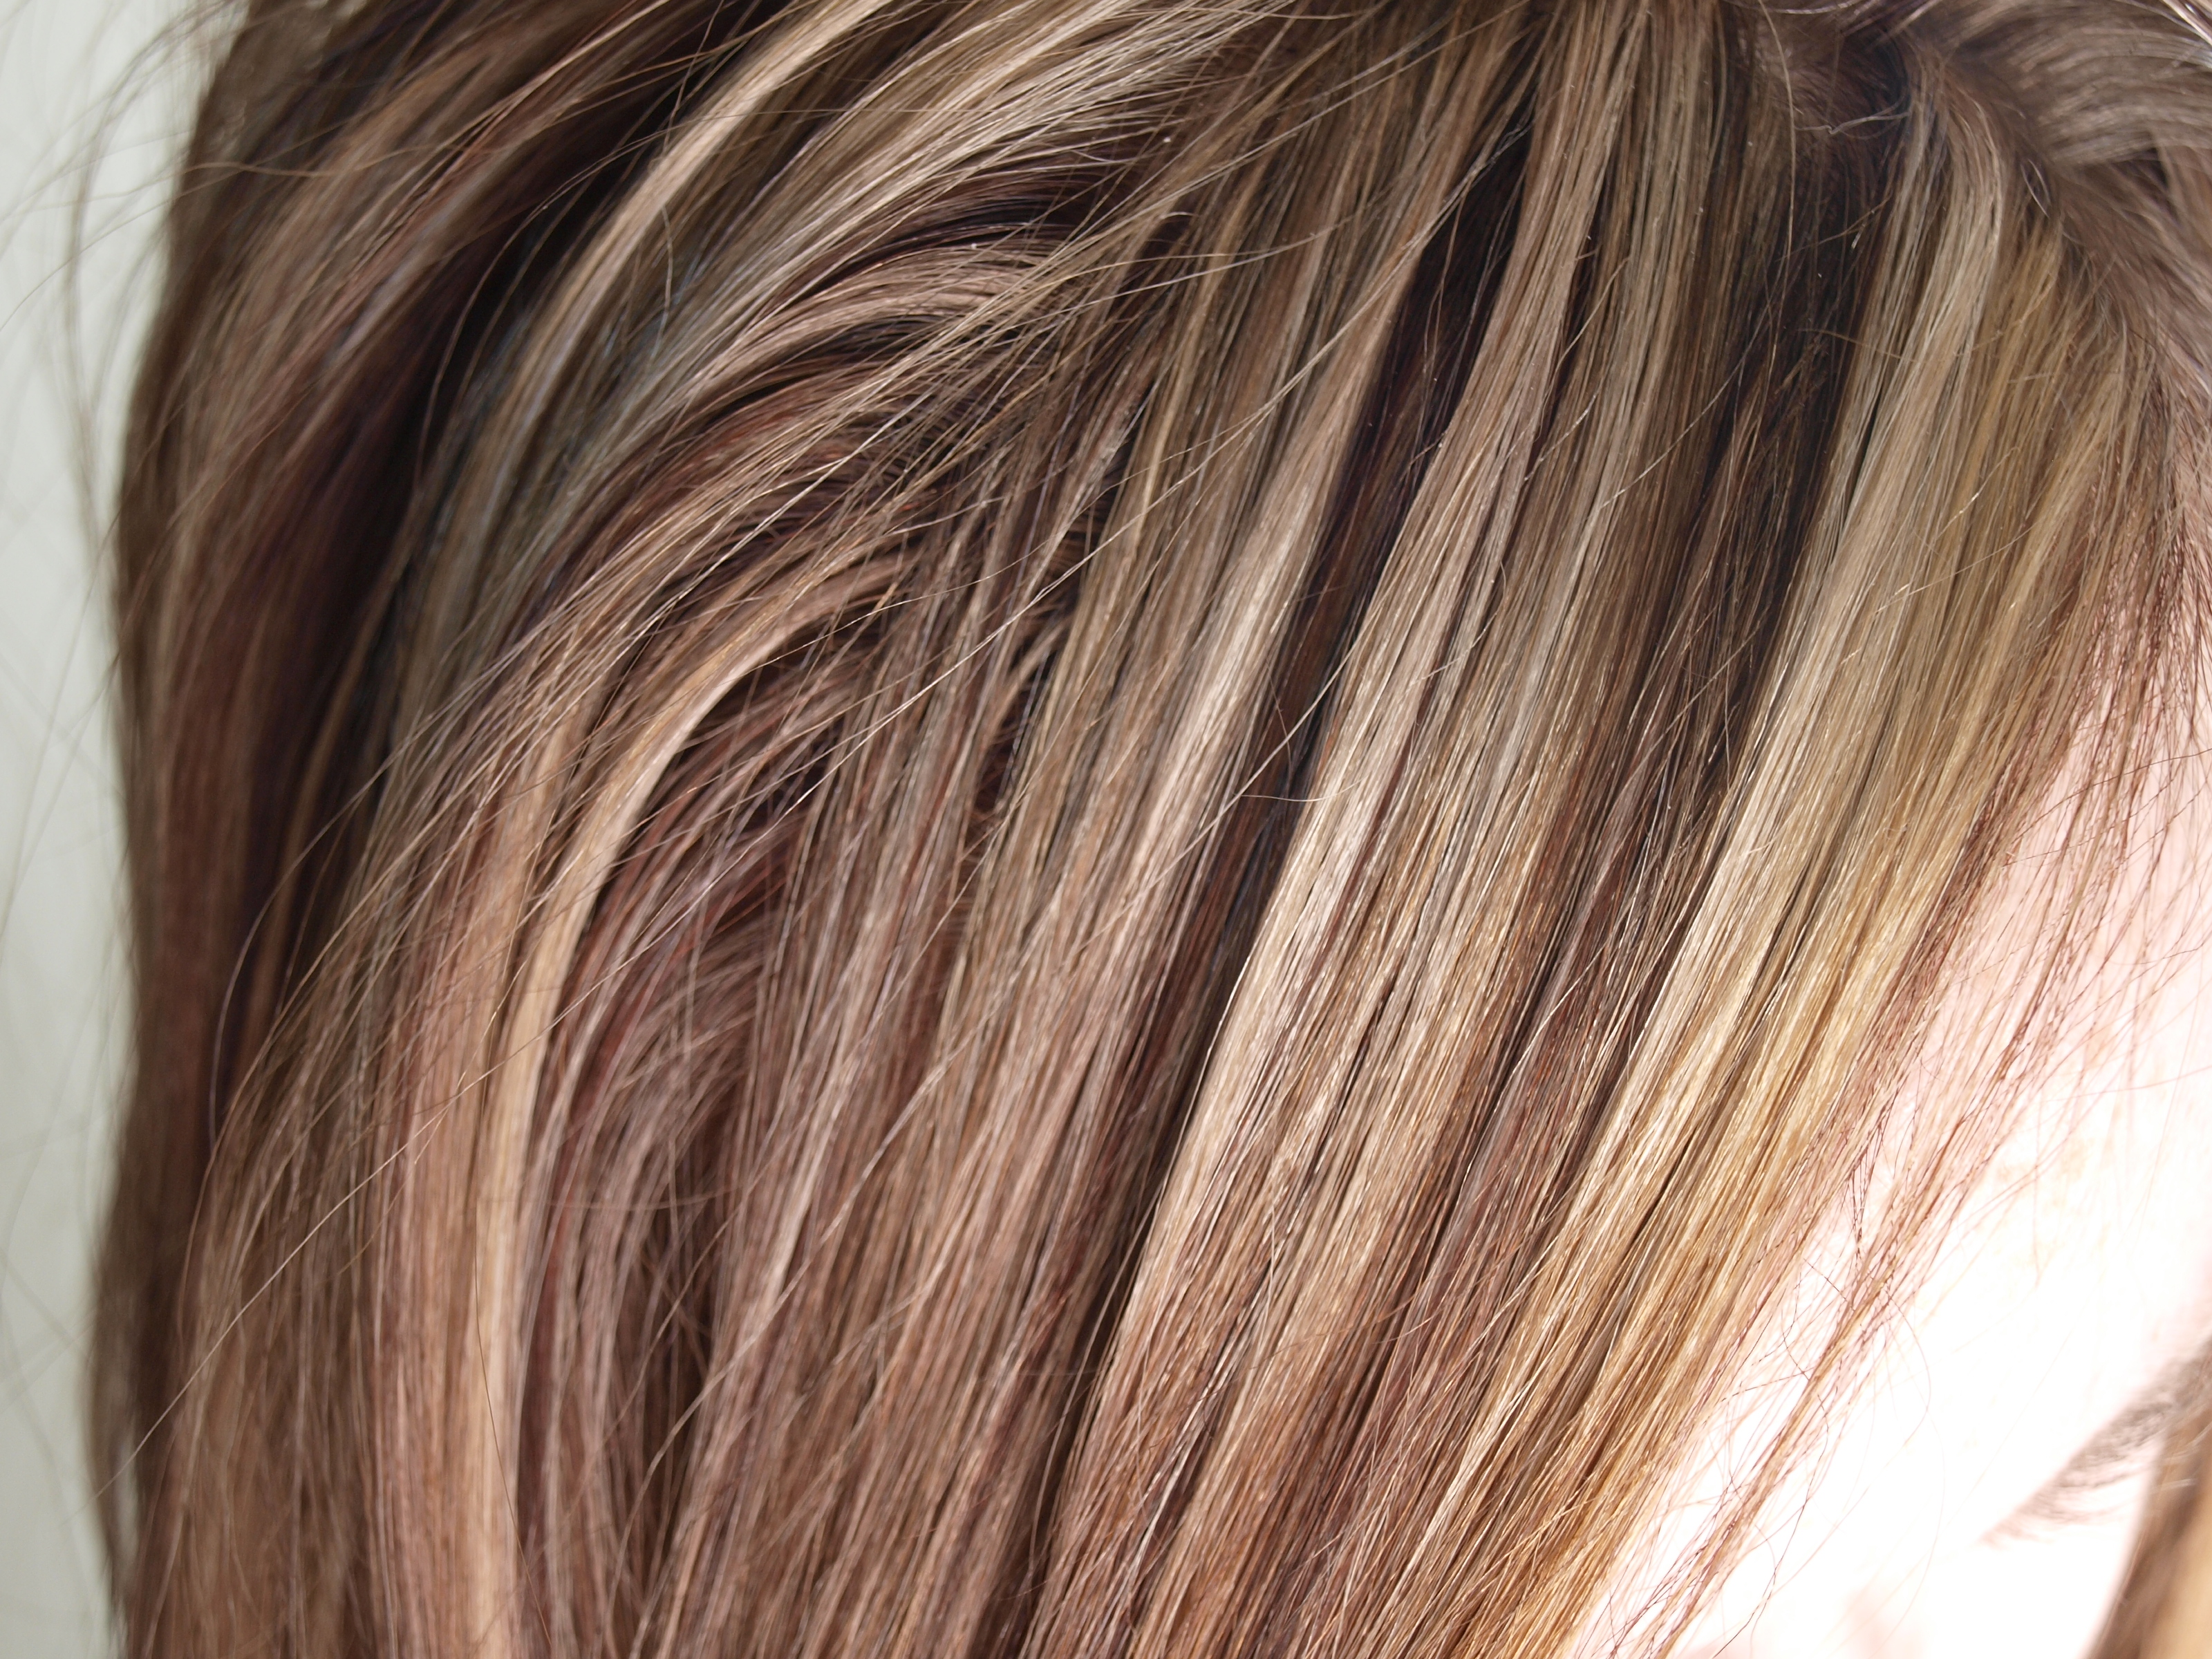 Heavy Blonde Highlights On Brown Hair Auburn with bright blonde